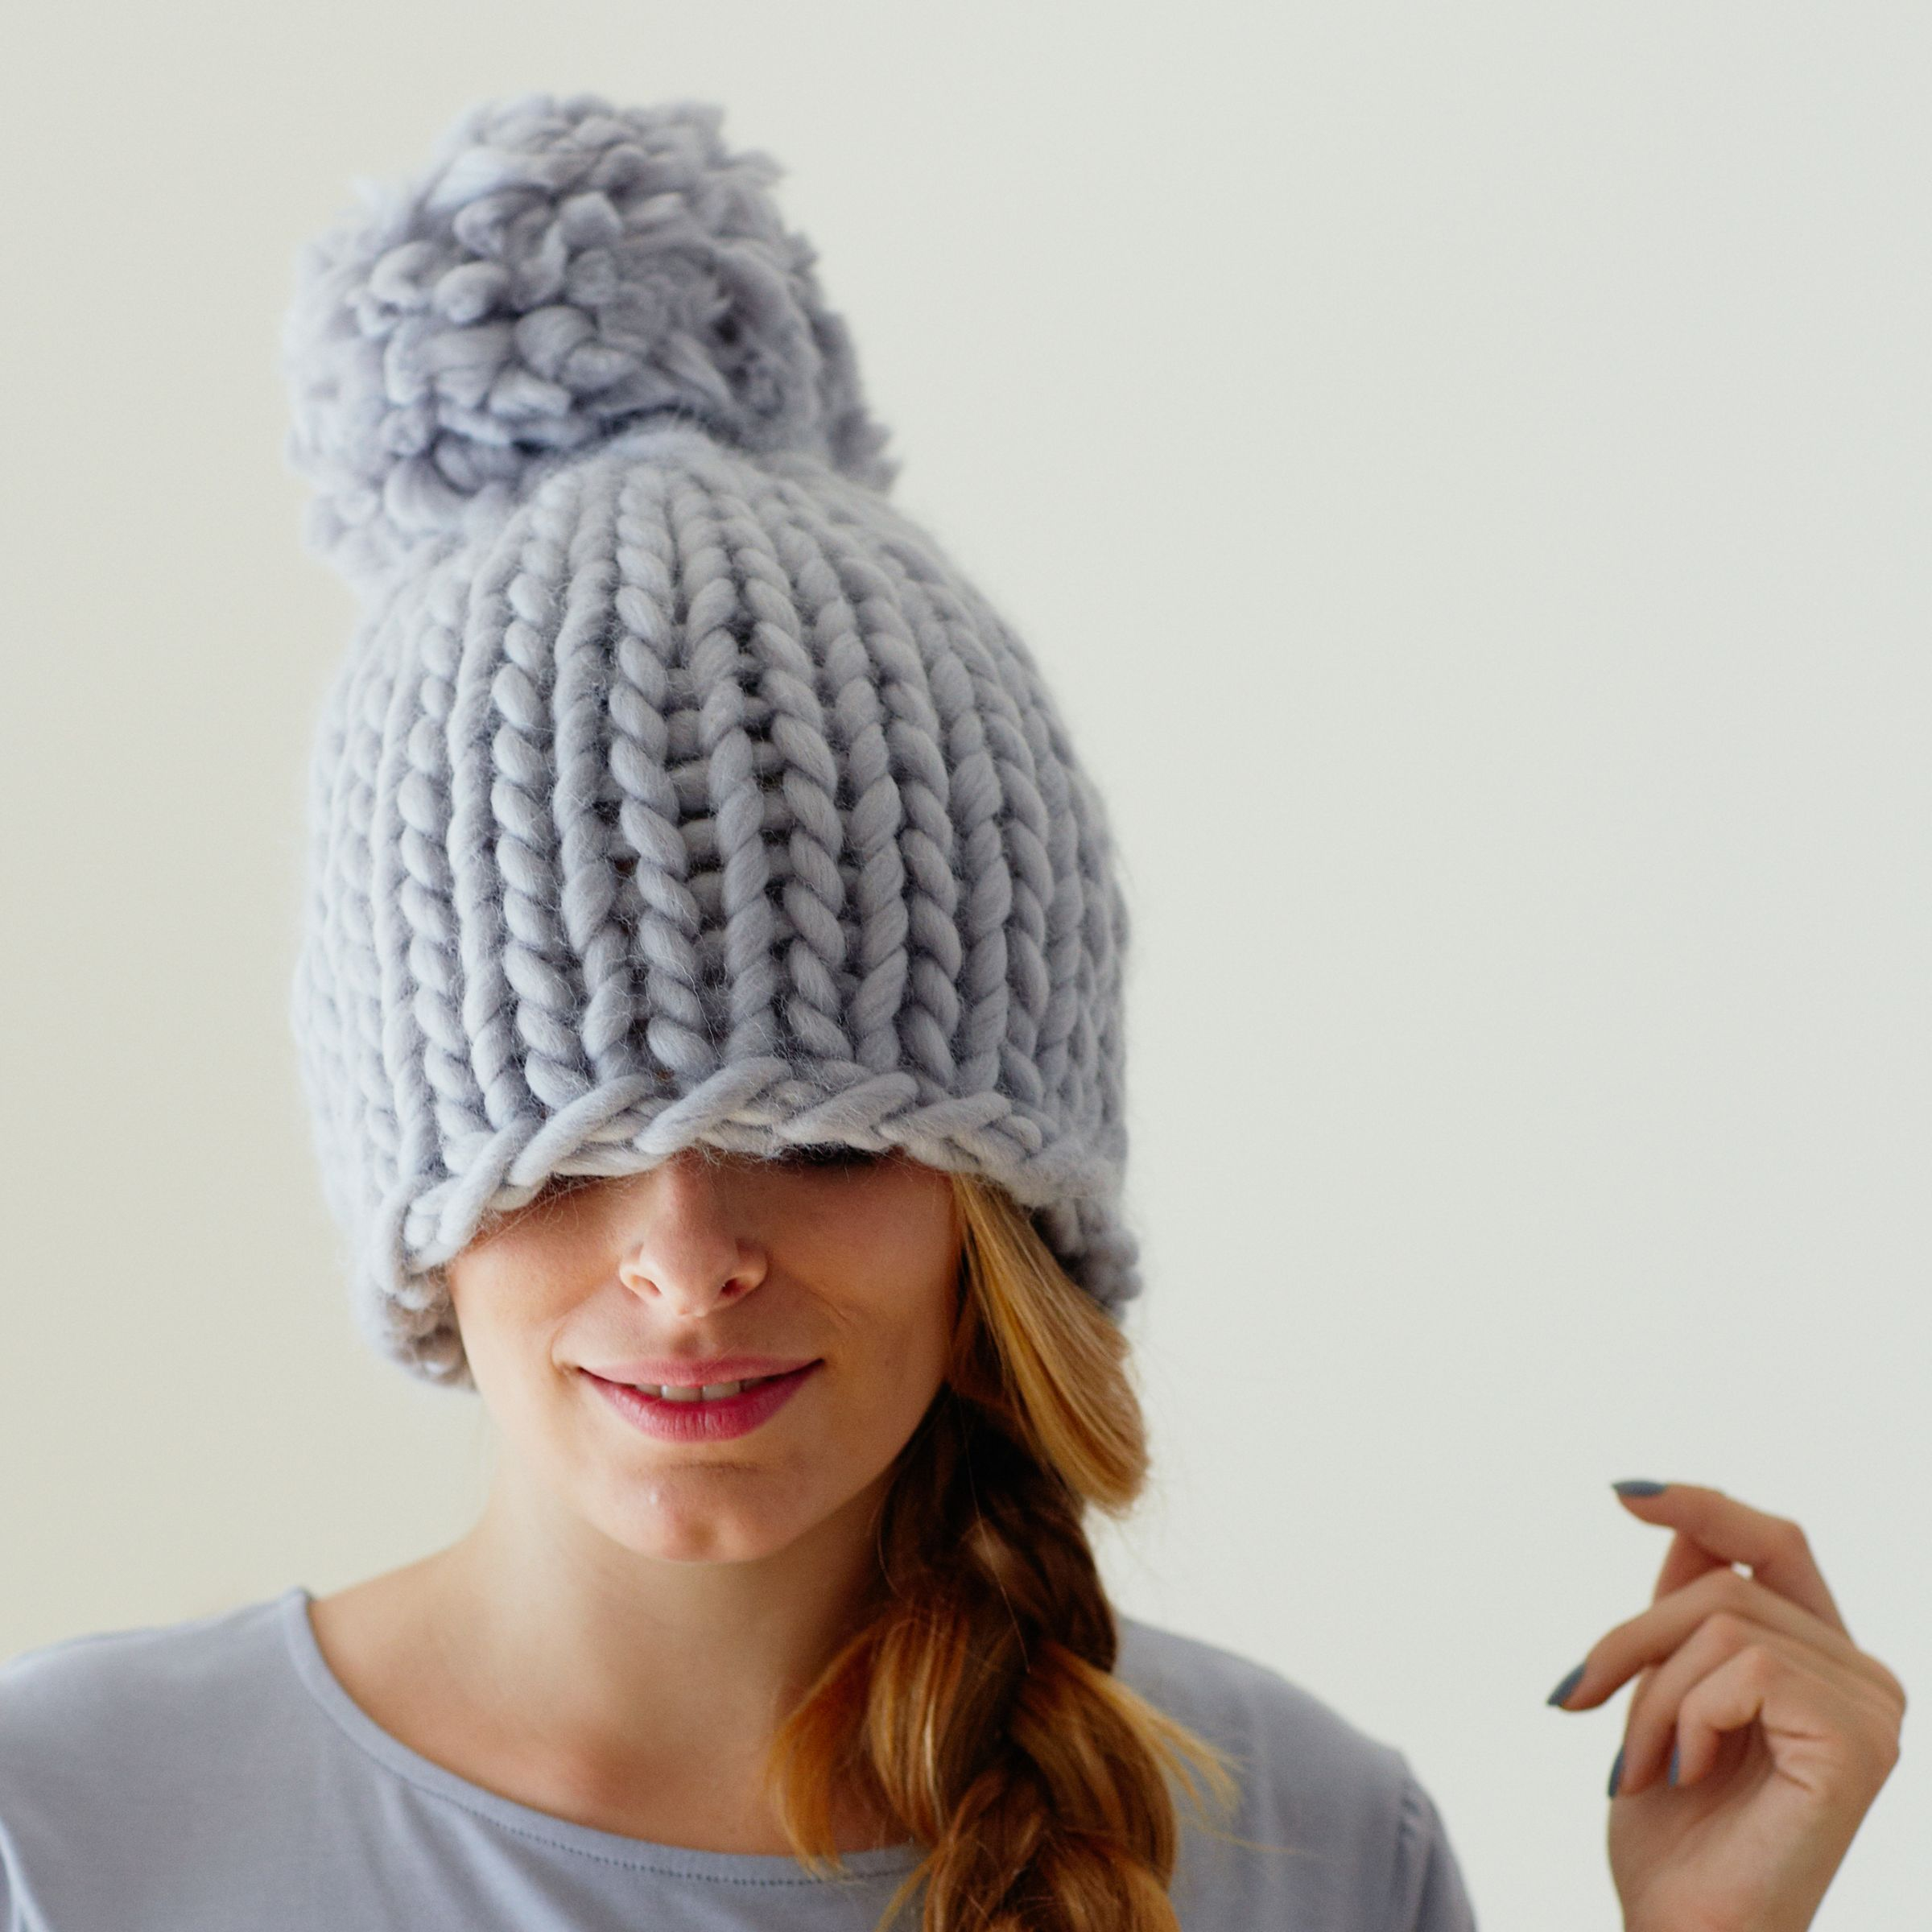 Knitting Pattern John Lewis : Buy Erika Knight for John Lewis XXL Pom Pom Hat Knitting Pattern John Lewis